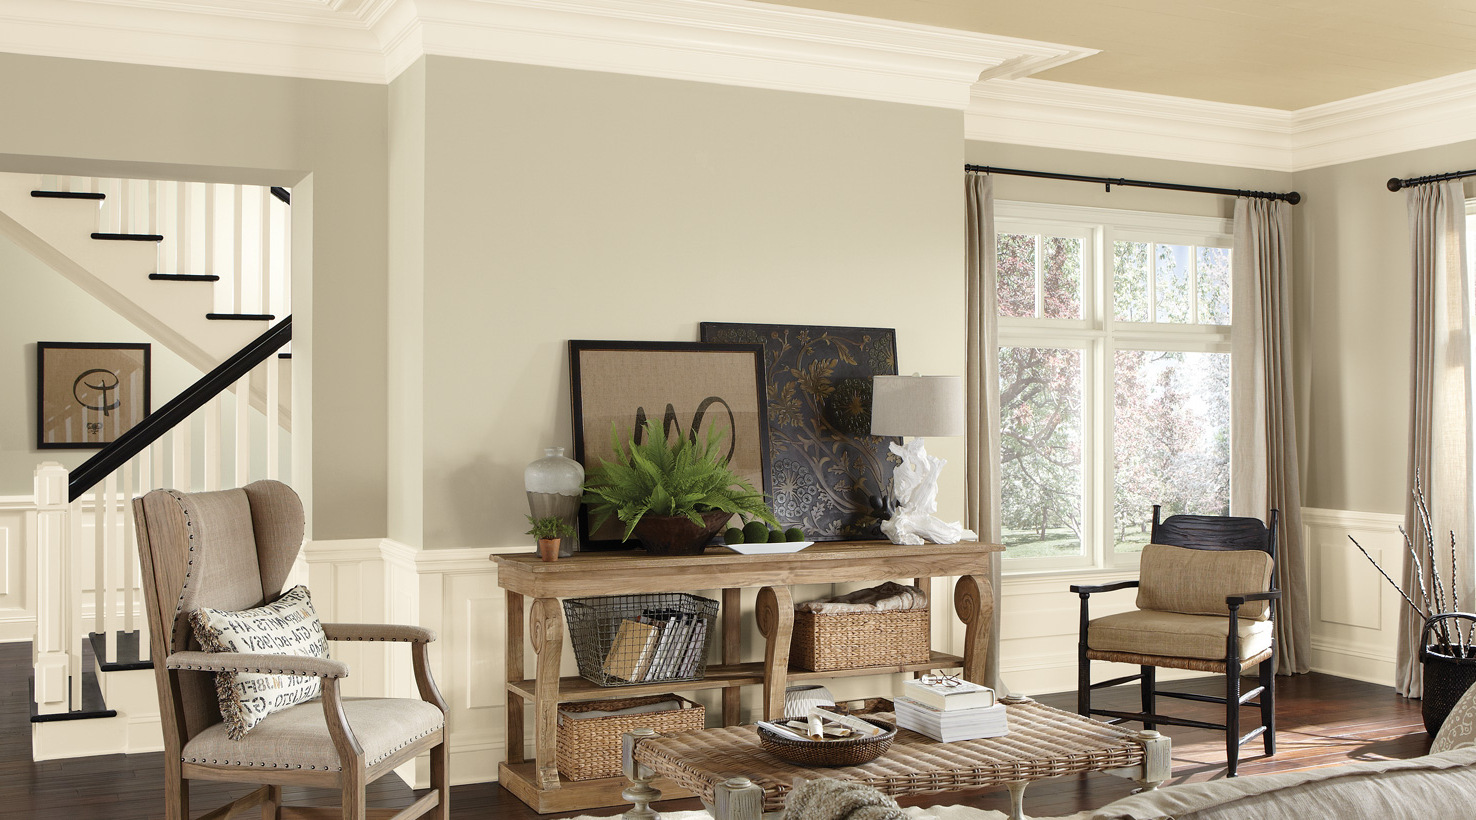 Best Paint Color For Living Room Ideas To Decorate Living. The Living Room Trail Salt Lake City. Tv Living Room Design Ideas. Leeds Living Room. Living Room Window Coverings. Living In A Rented Room. Living Room Color Ideas Gray. Blue White And Grey Living Room. India Living Room